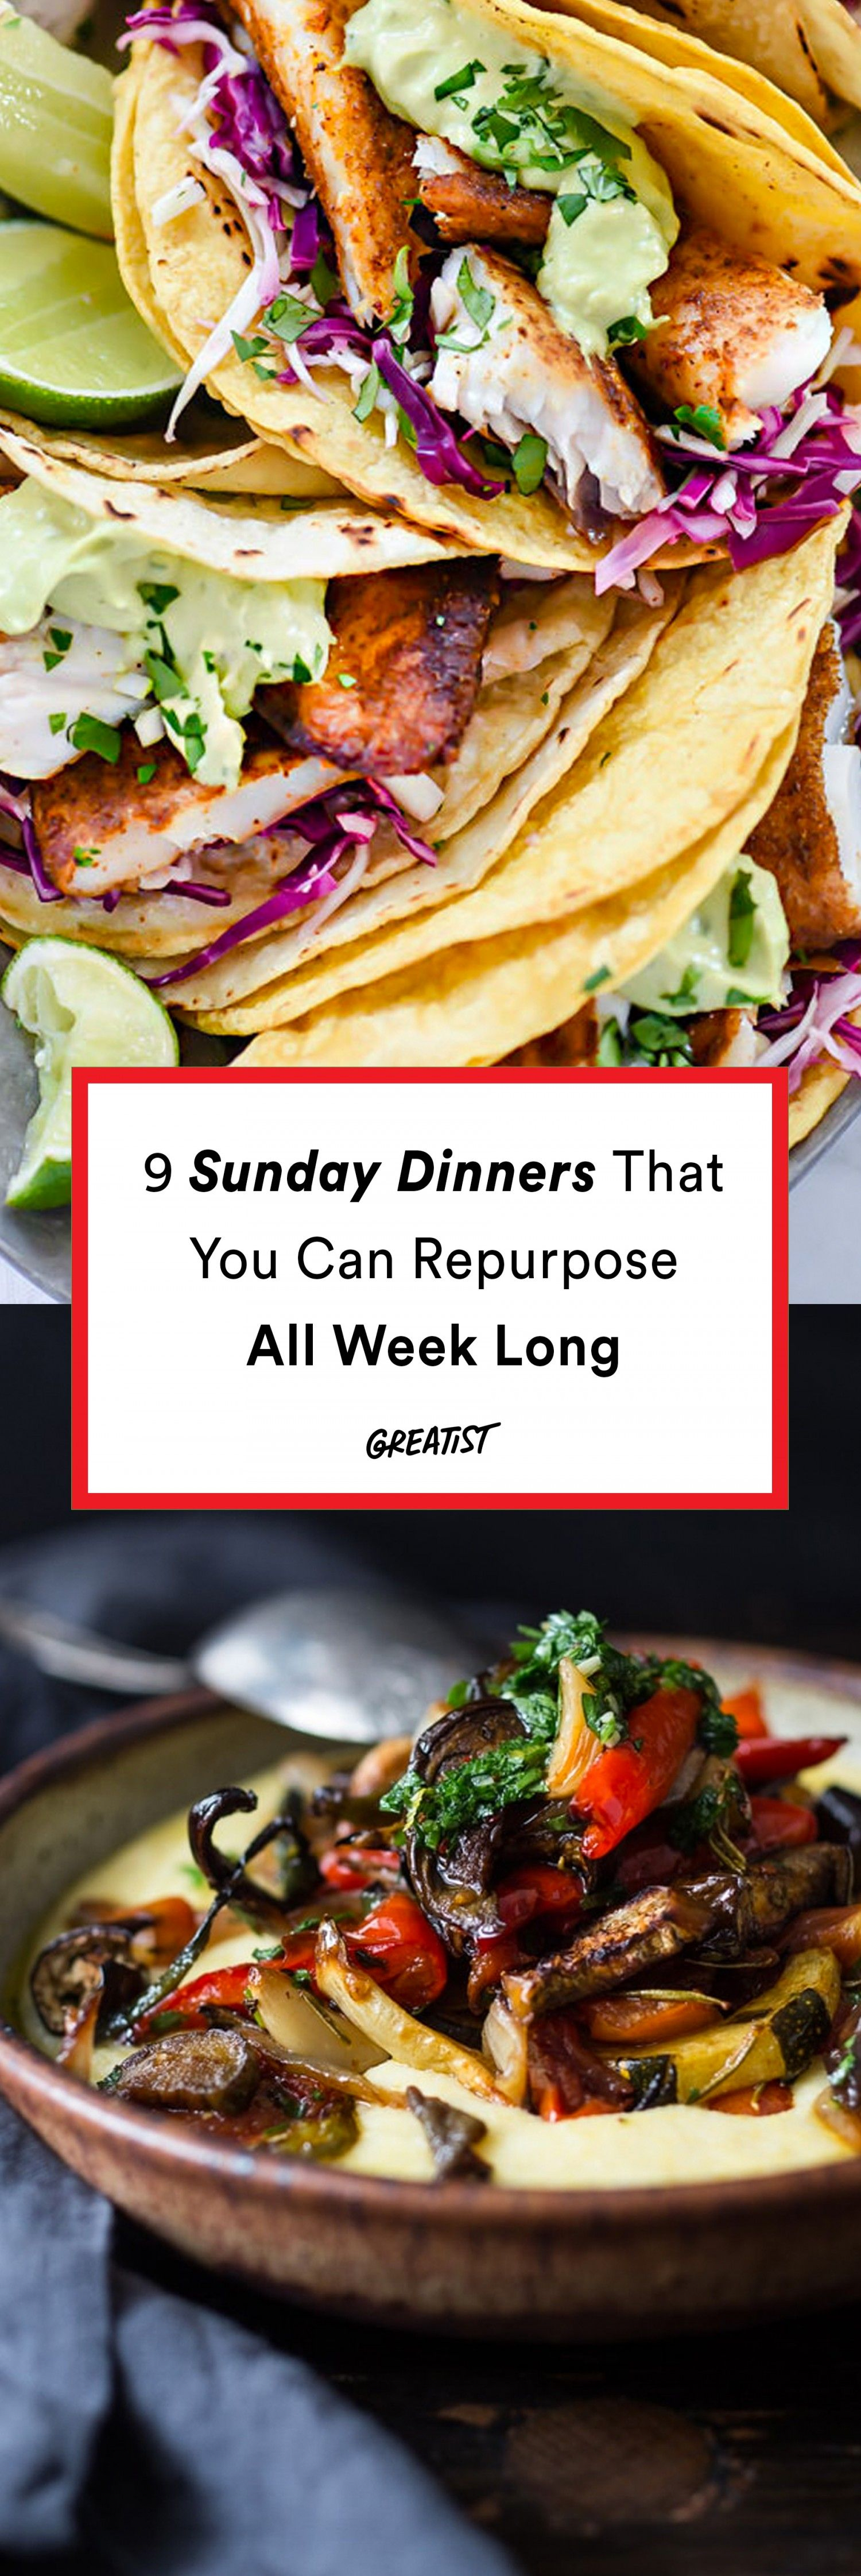 9 Sunday Dinners That You Can Repurpose All Week Long images